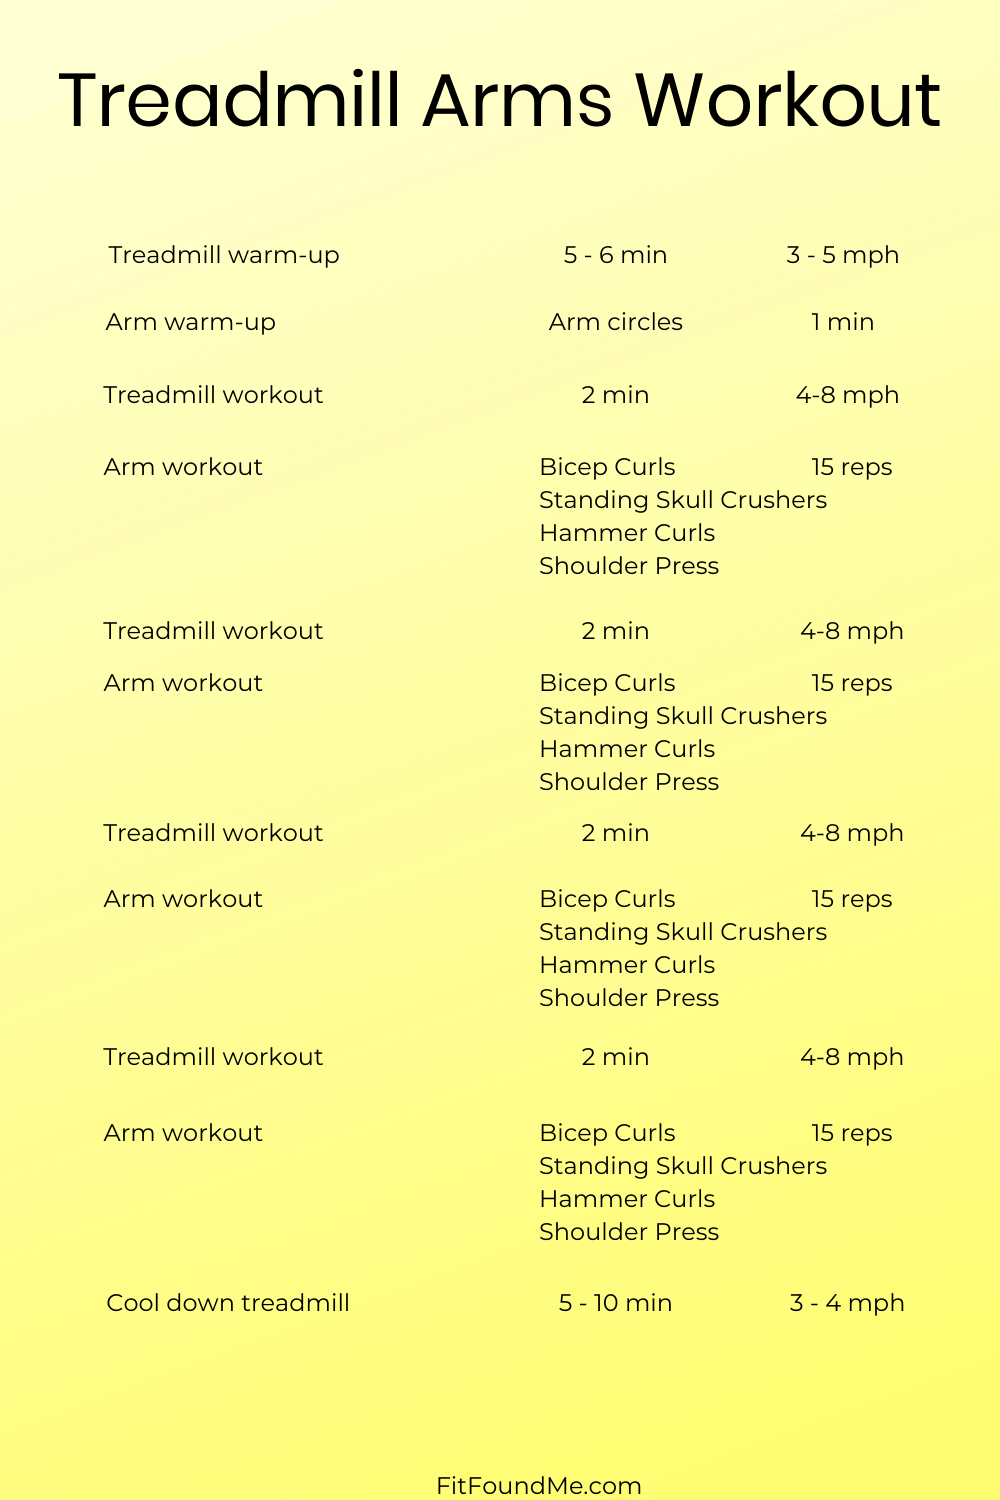 treadmill arms workout plan